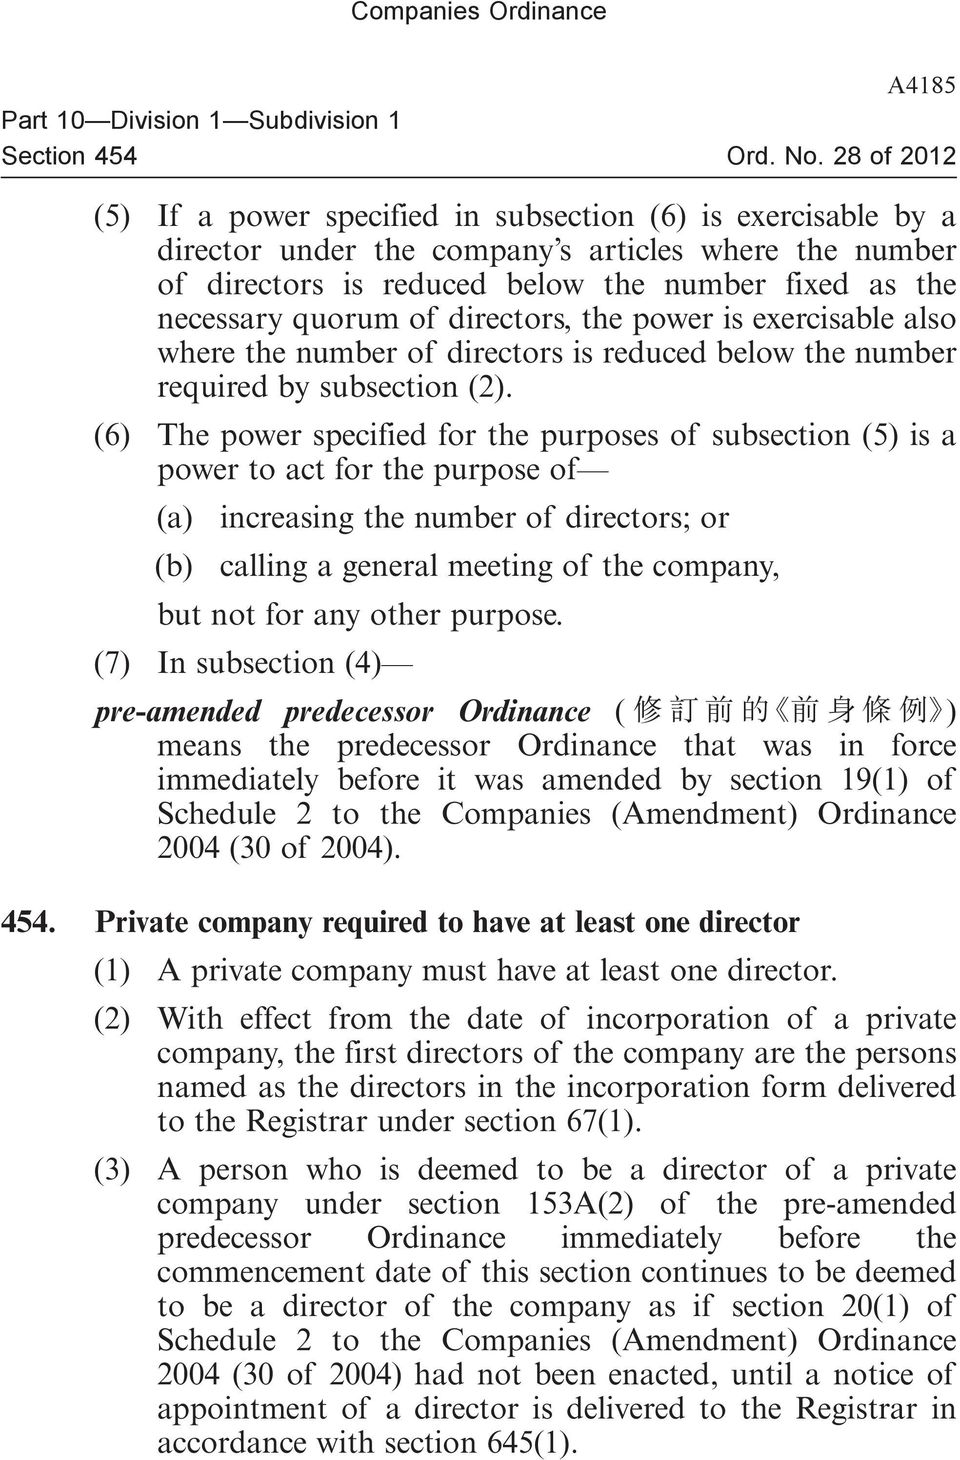 (6) The power specified for the purposes of subsection (5) is a power to act for the purpose of (a) increasing the number of directors; or (b) calling a general meeting of the company, but not for